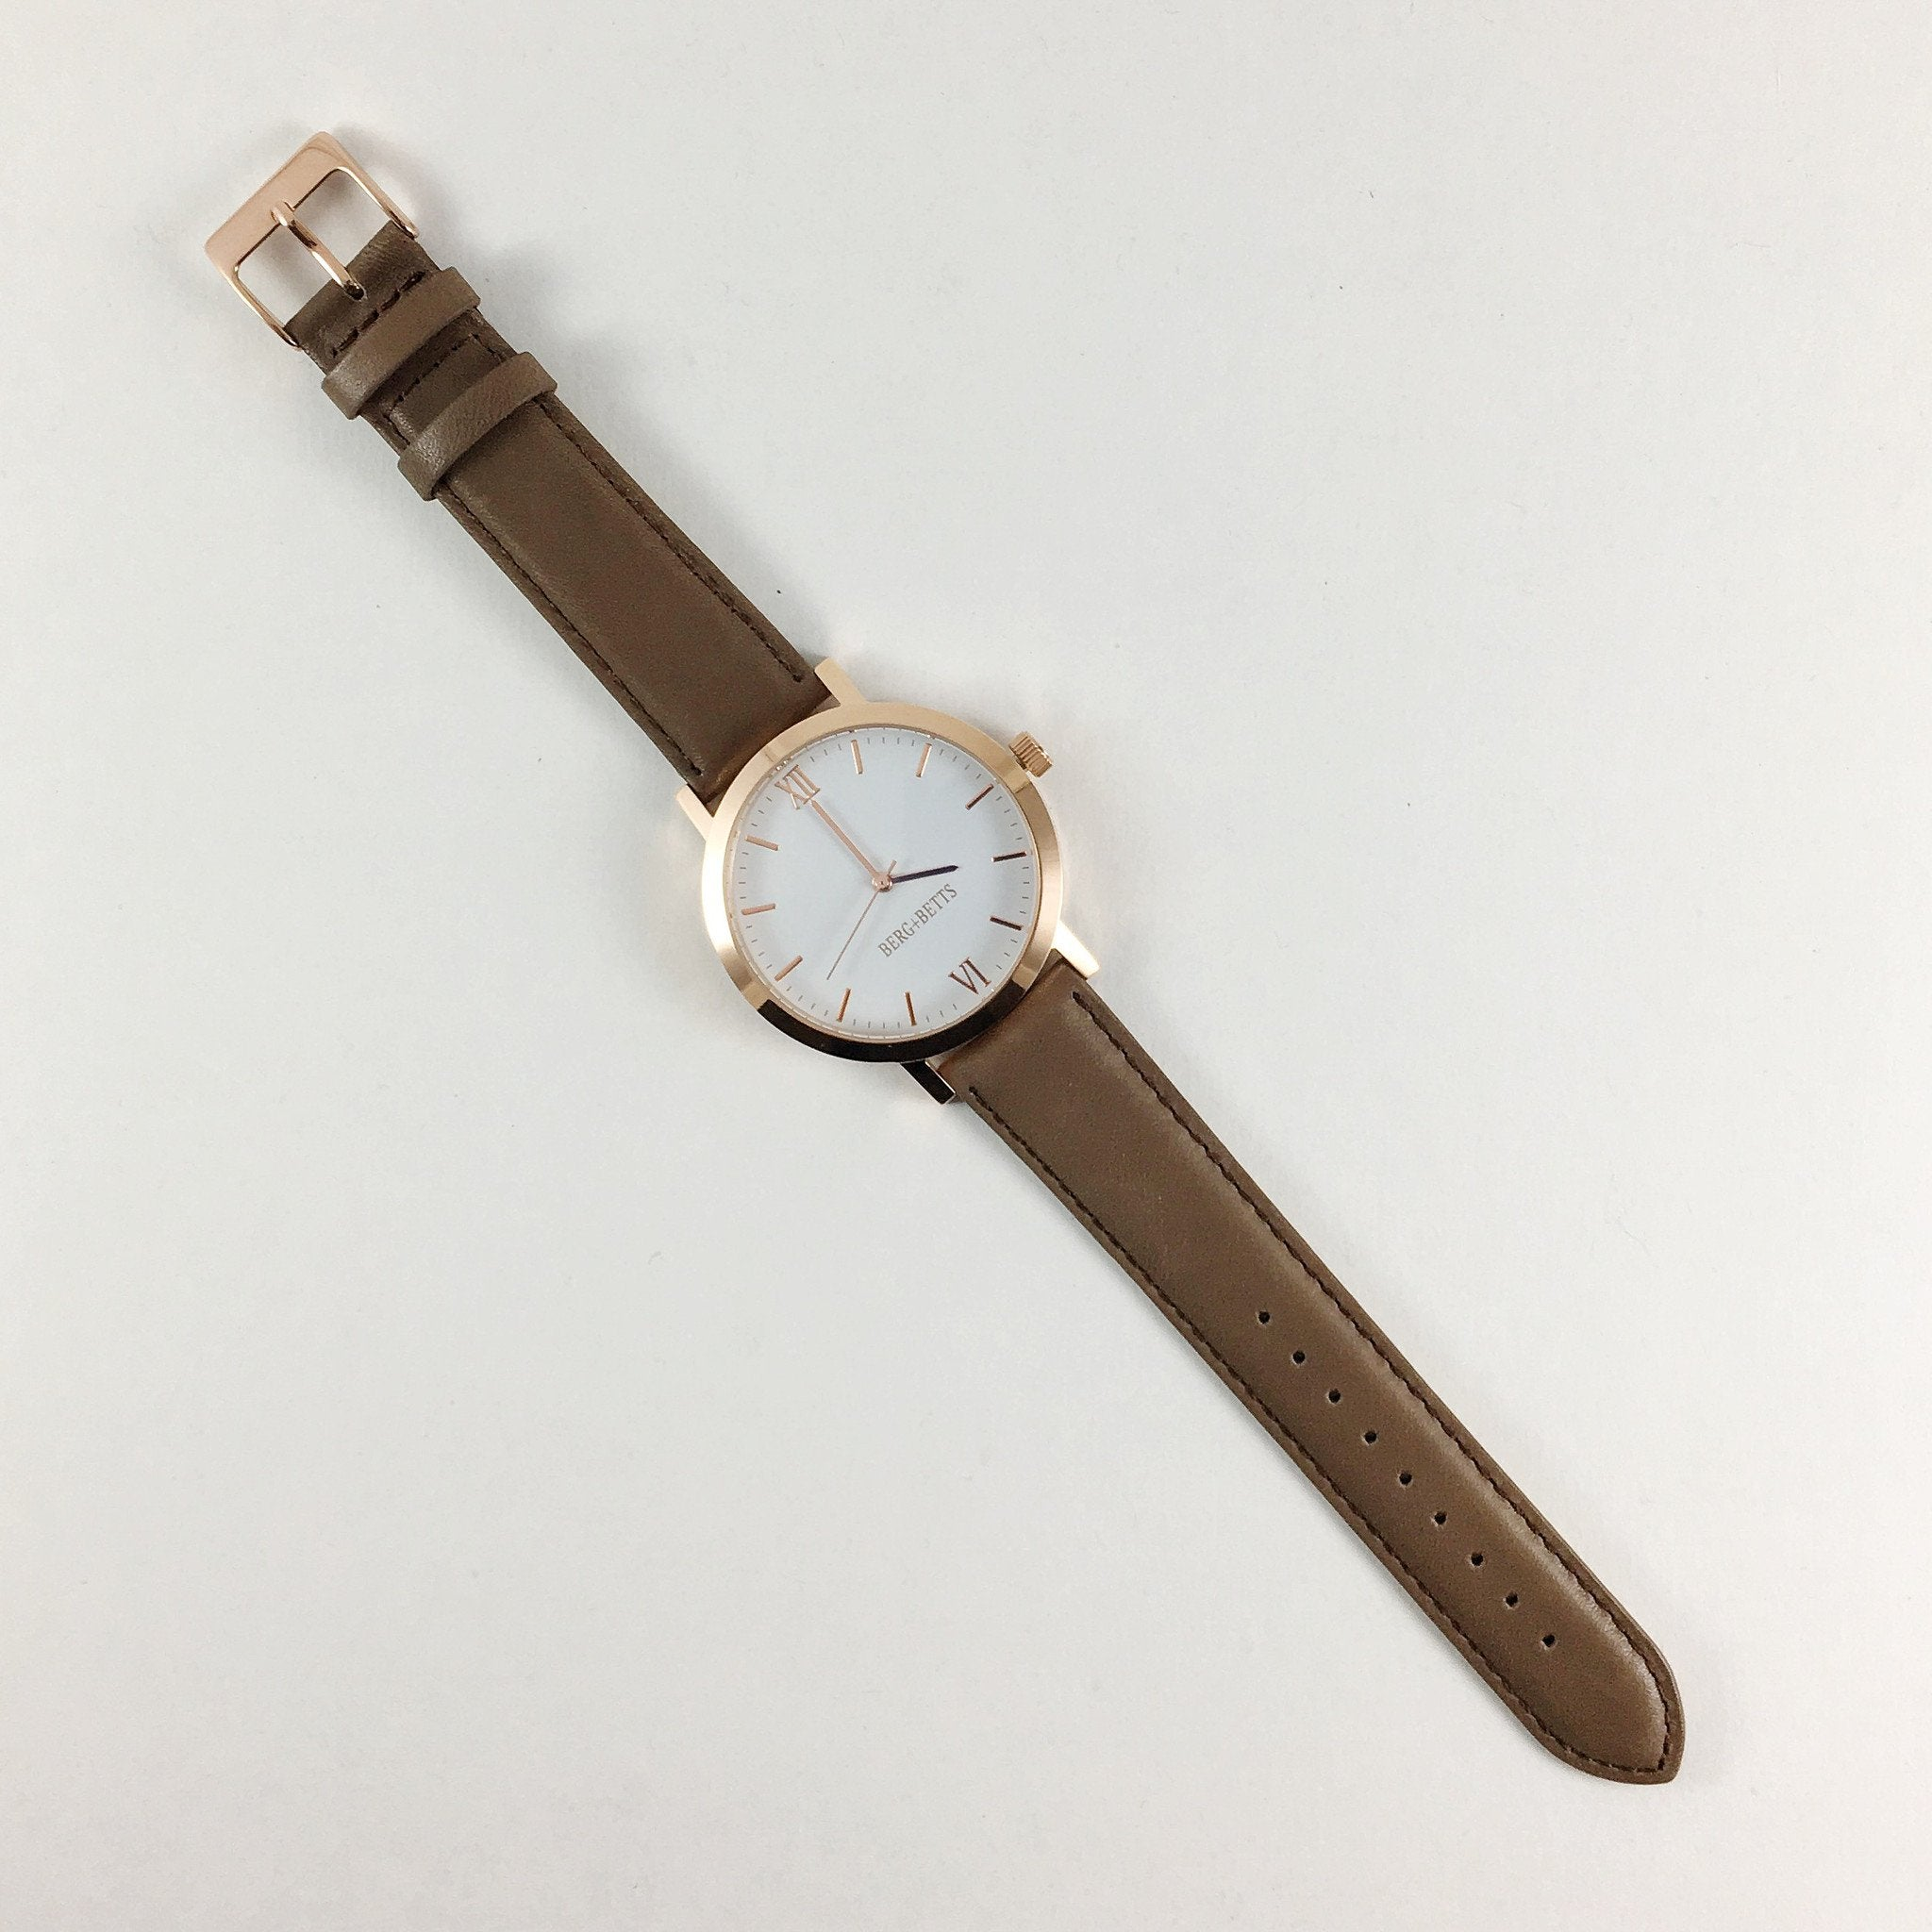 Minimalistic classic rose gold timepiece designed for your sustainable capsule wardrobe